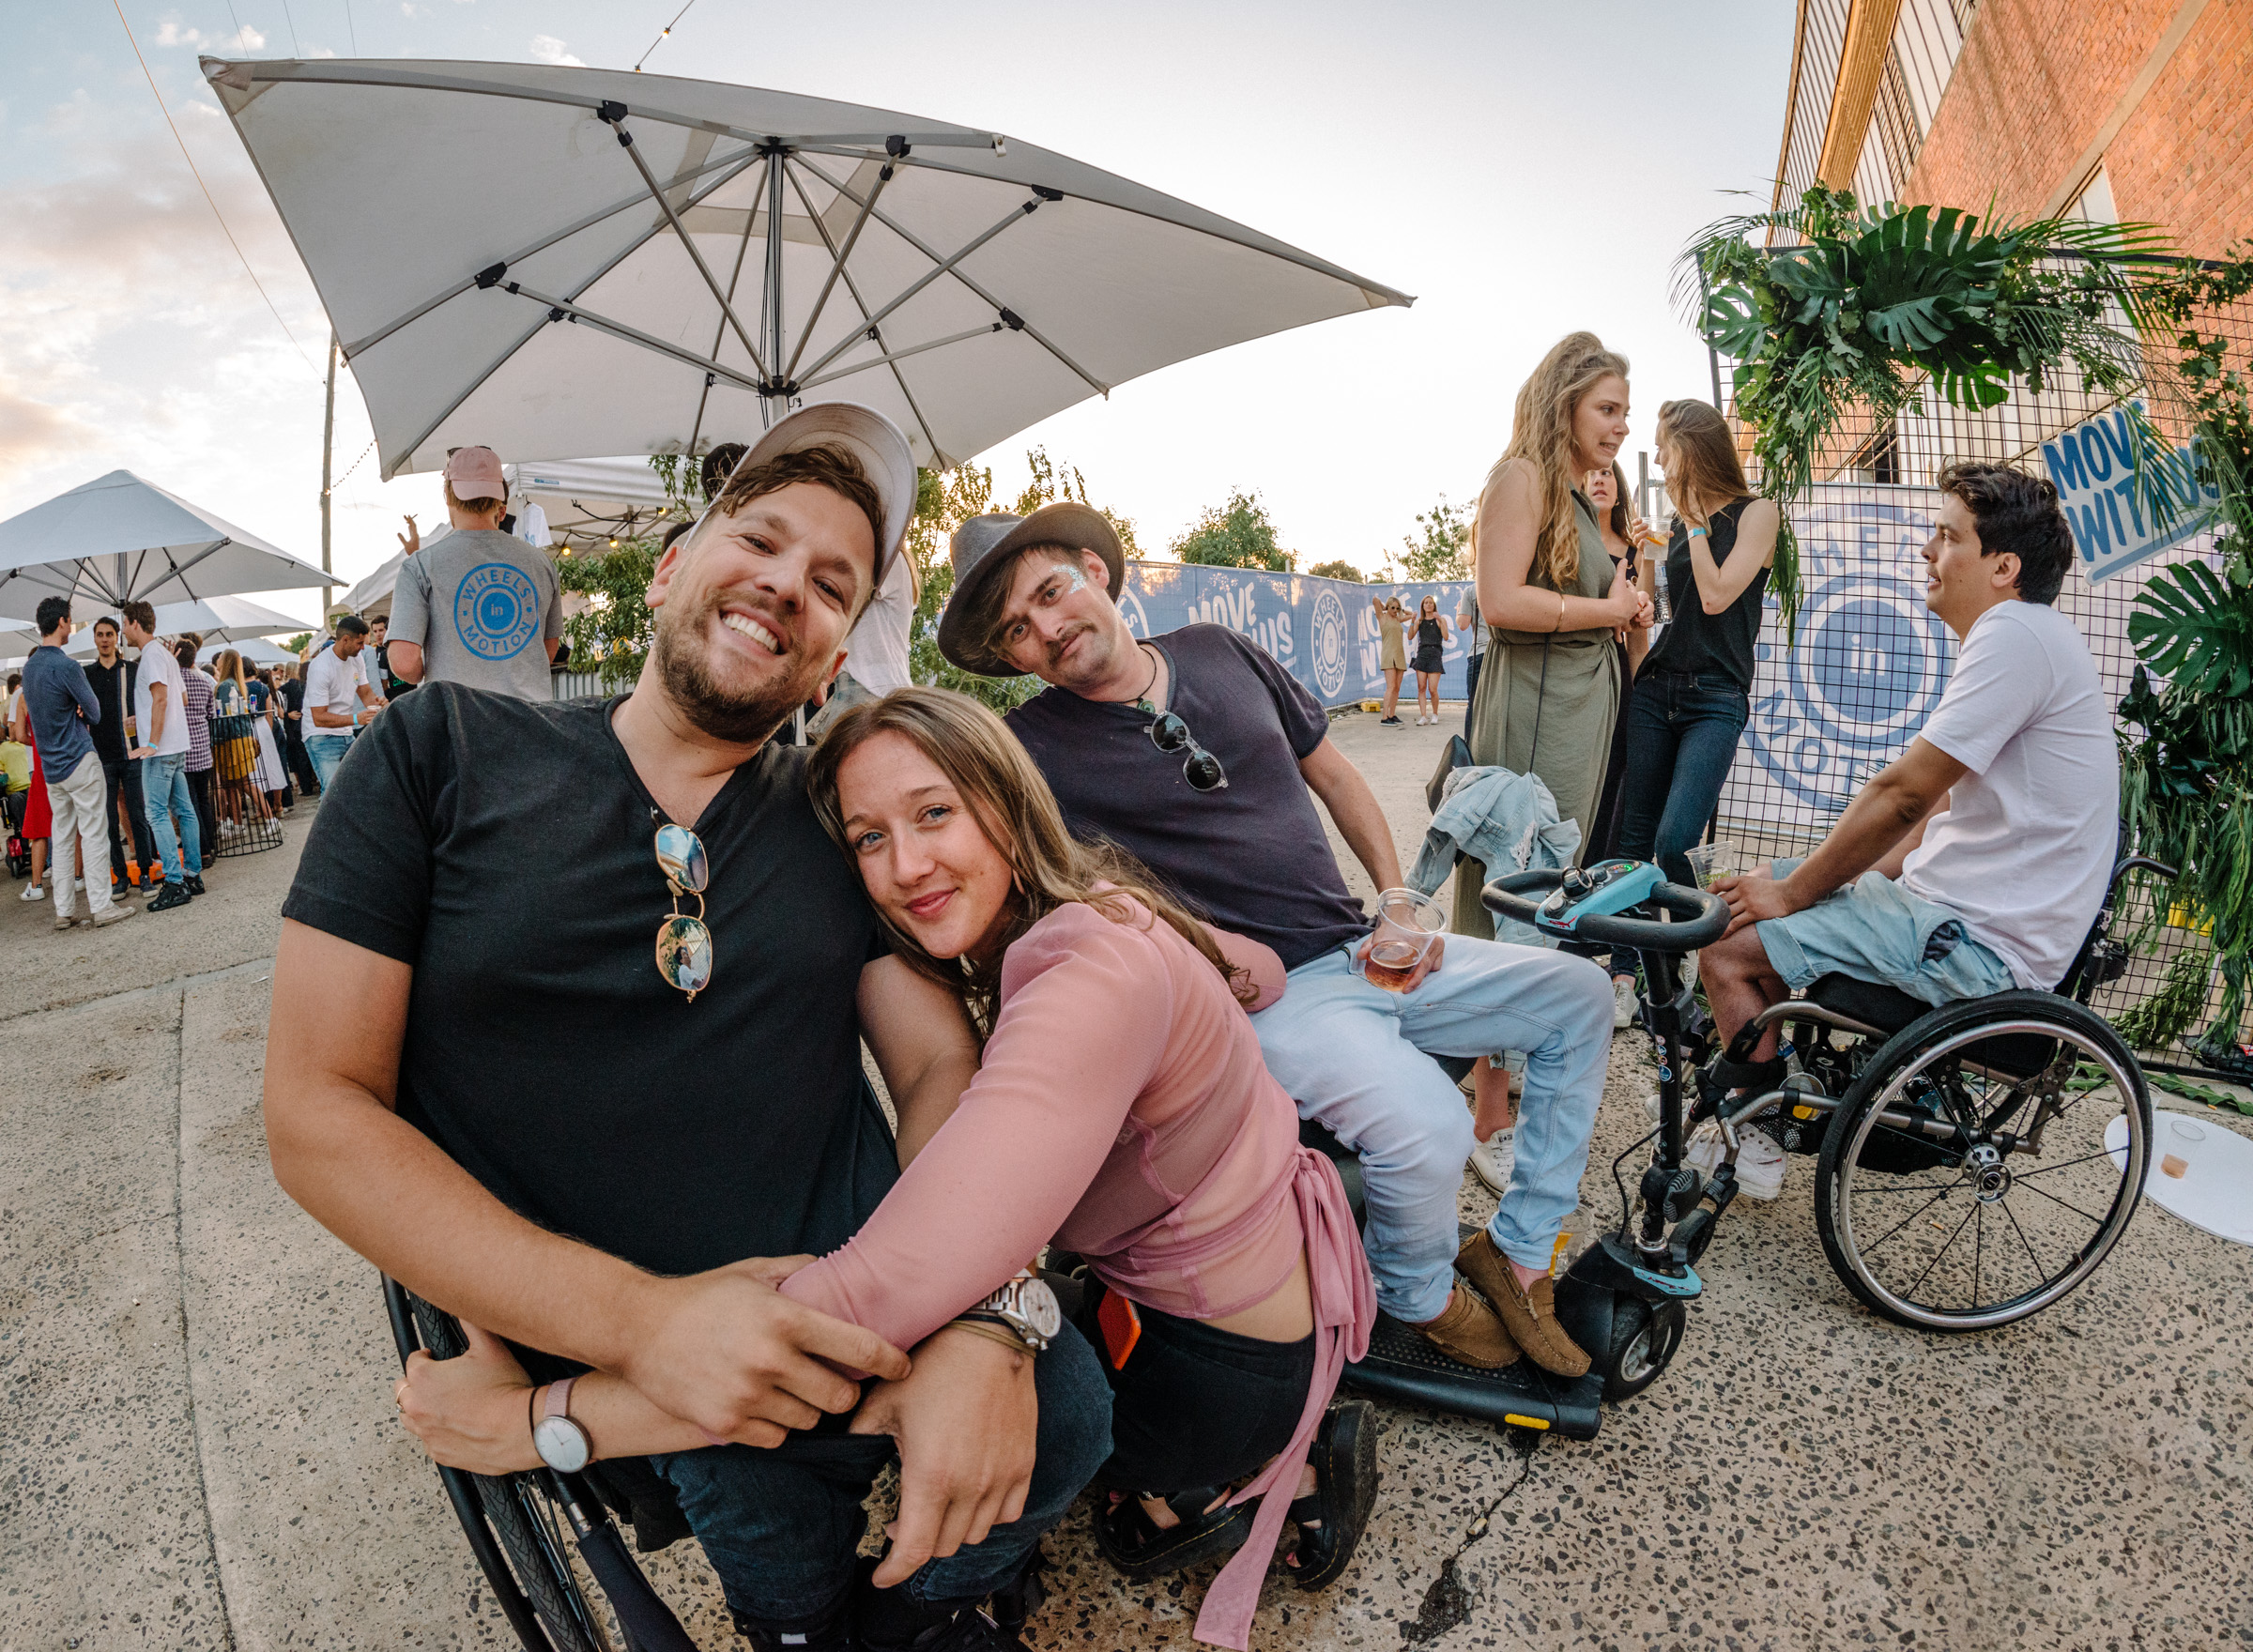 Image of 3 friends hugging. One uses a wheelchair, one uses a mobility scooter and one is squatting. There is another wheelchair user in the background. Everyone looks cool and happy!